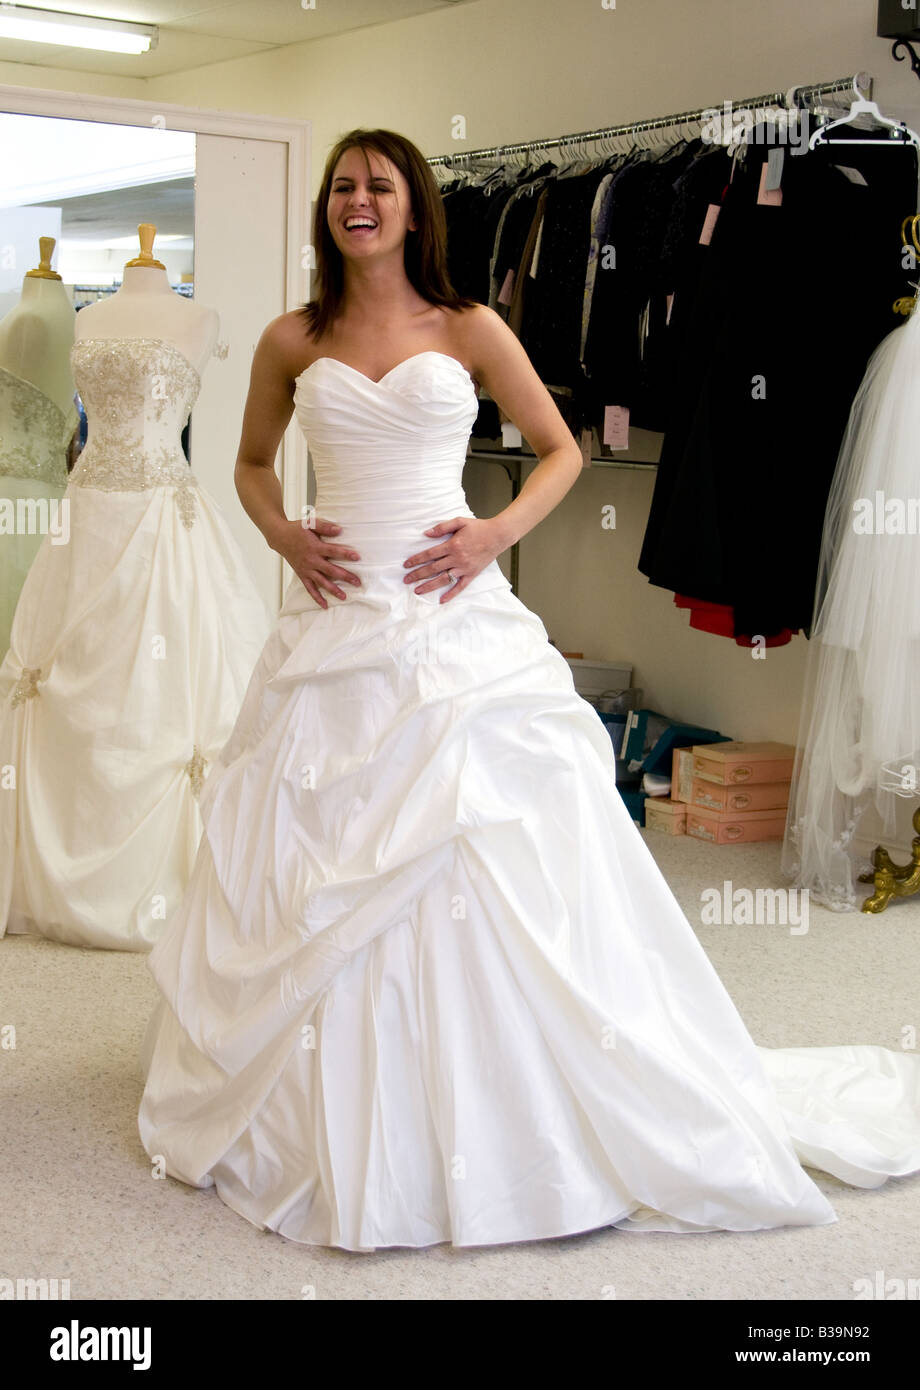 A young bride has her bridal gown fitting a few months before the wedding. - Stock Image